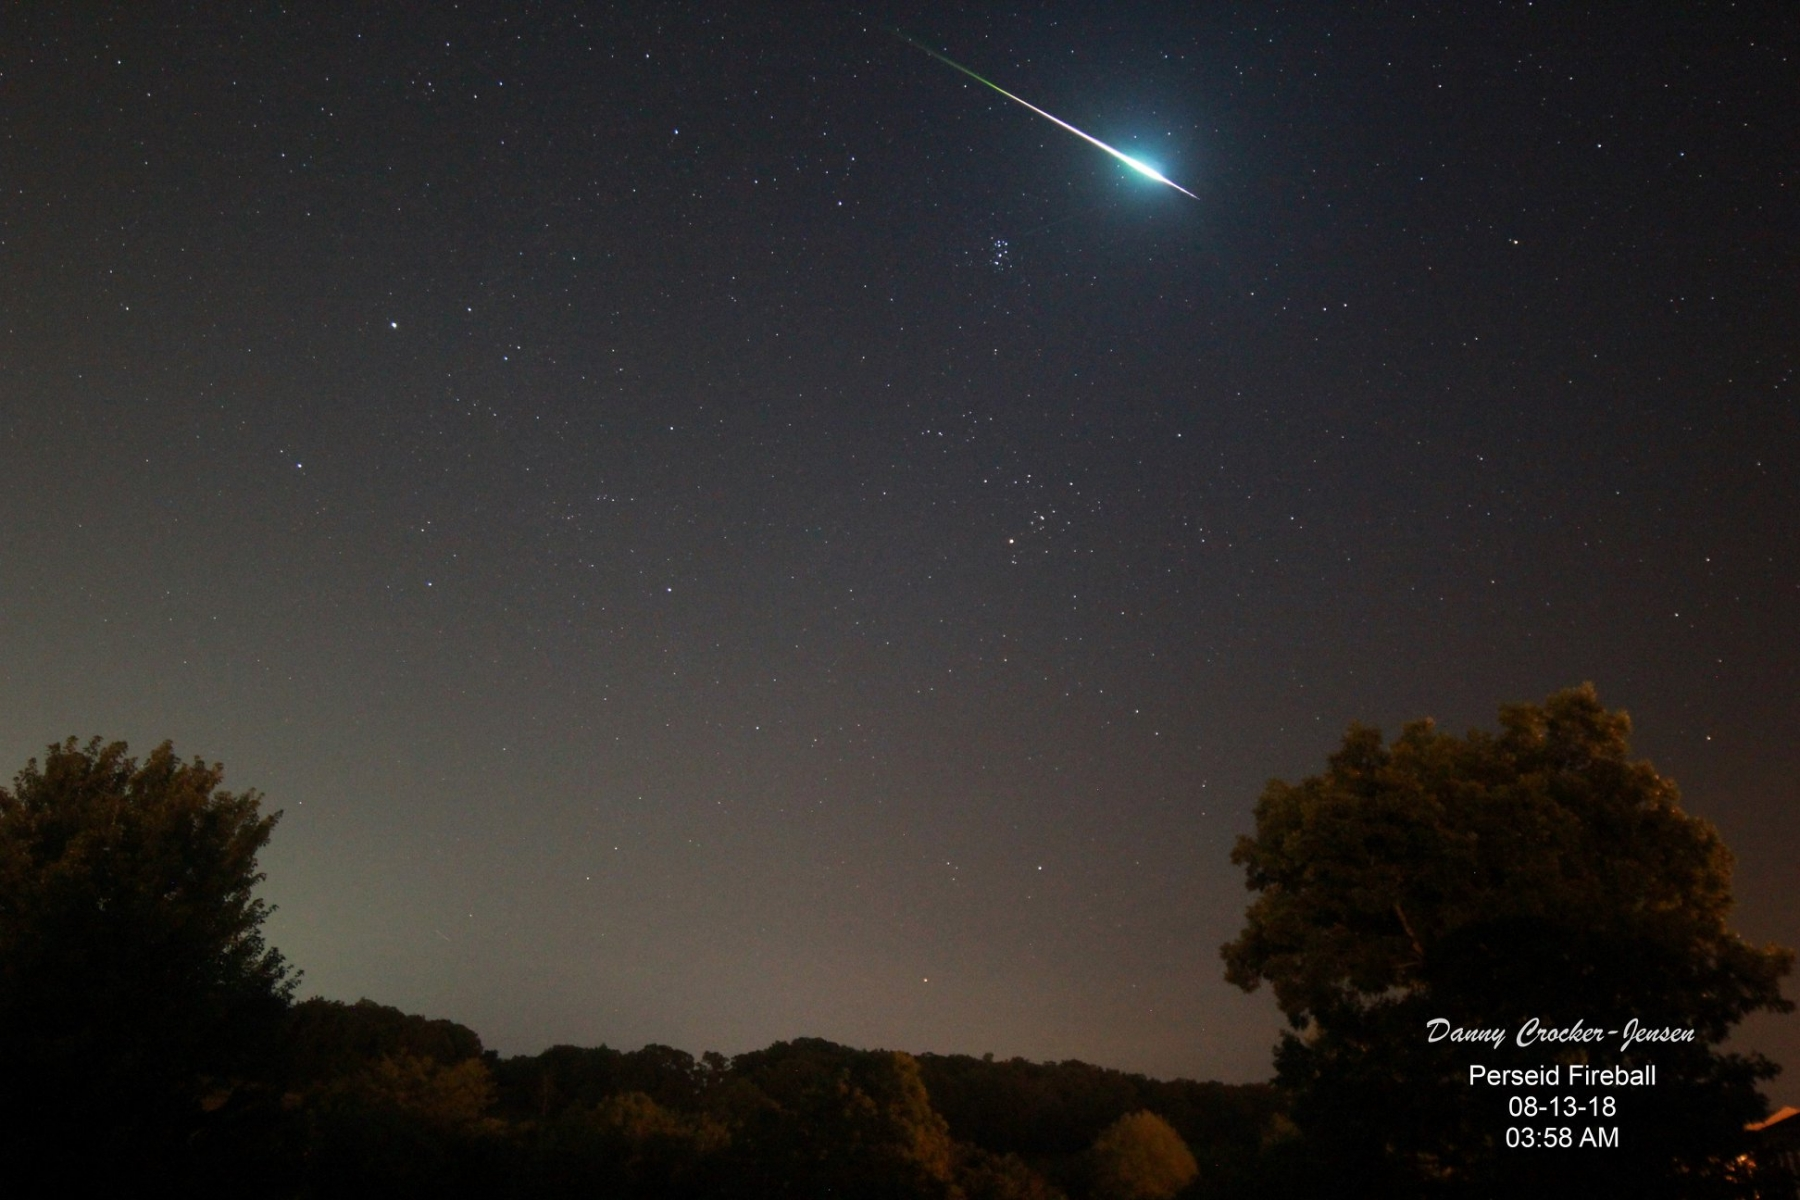 Meteor shower memphis